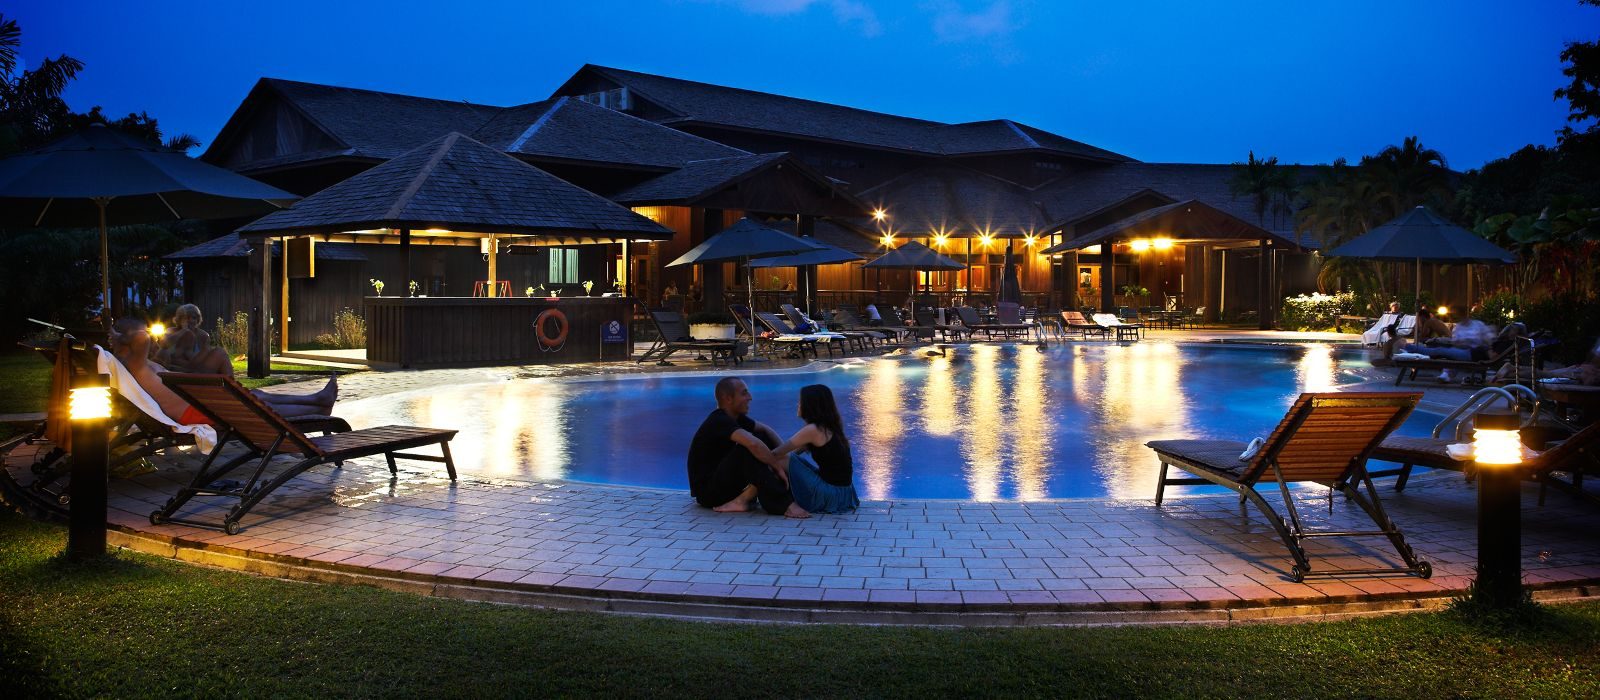 Resort Retreat Aiman Batang Ai Resort & Retreat Hotel In Malaysia